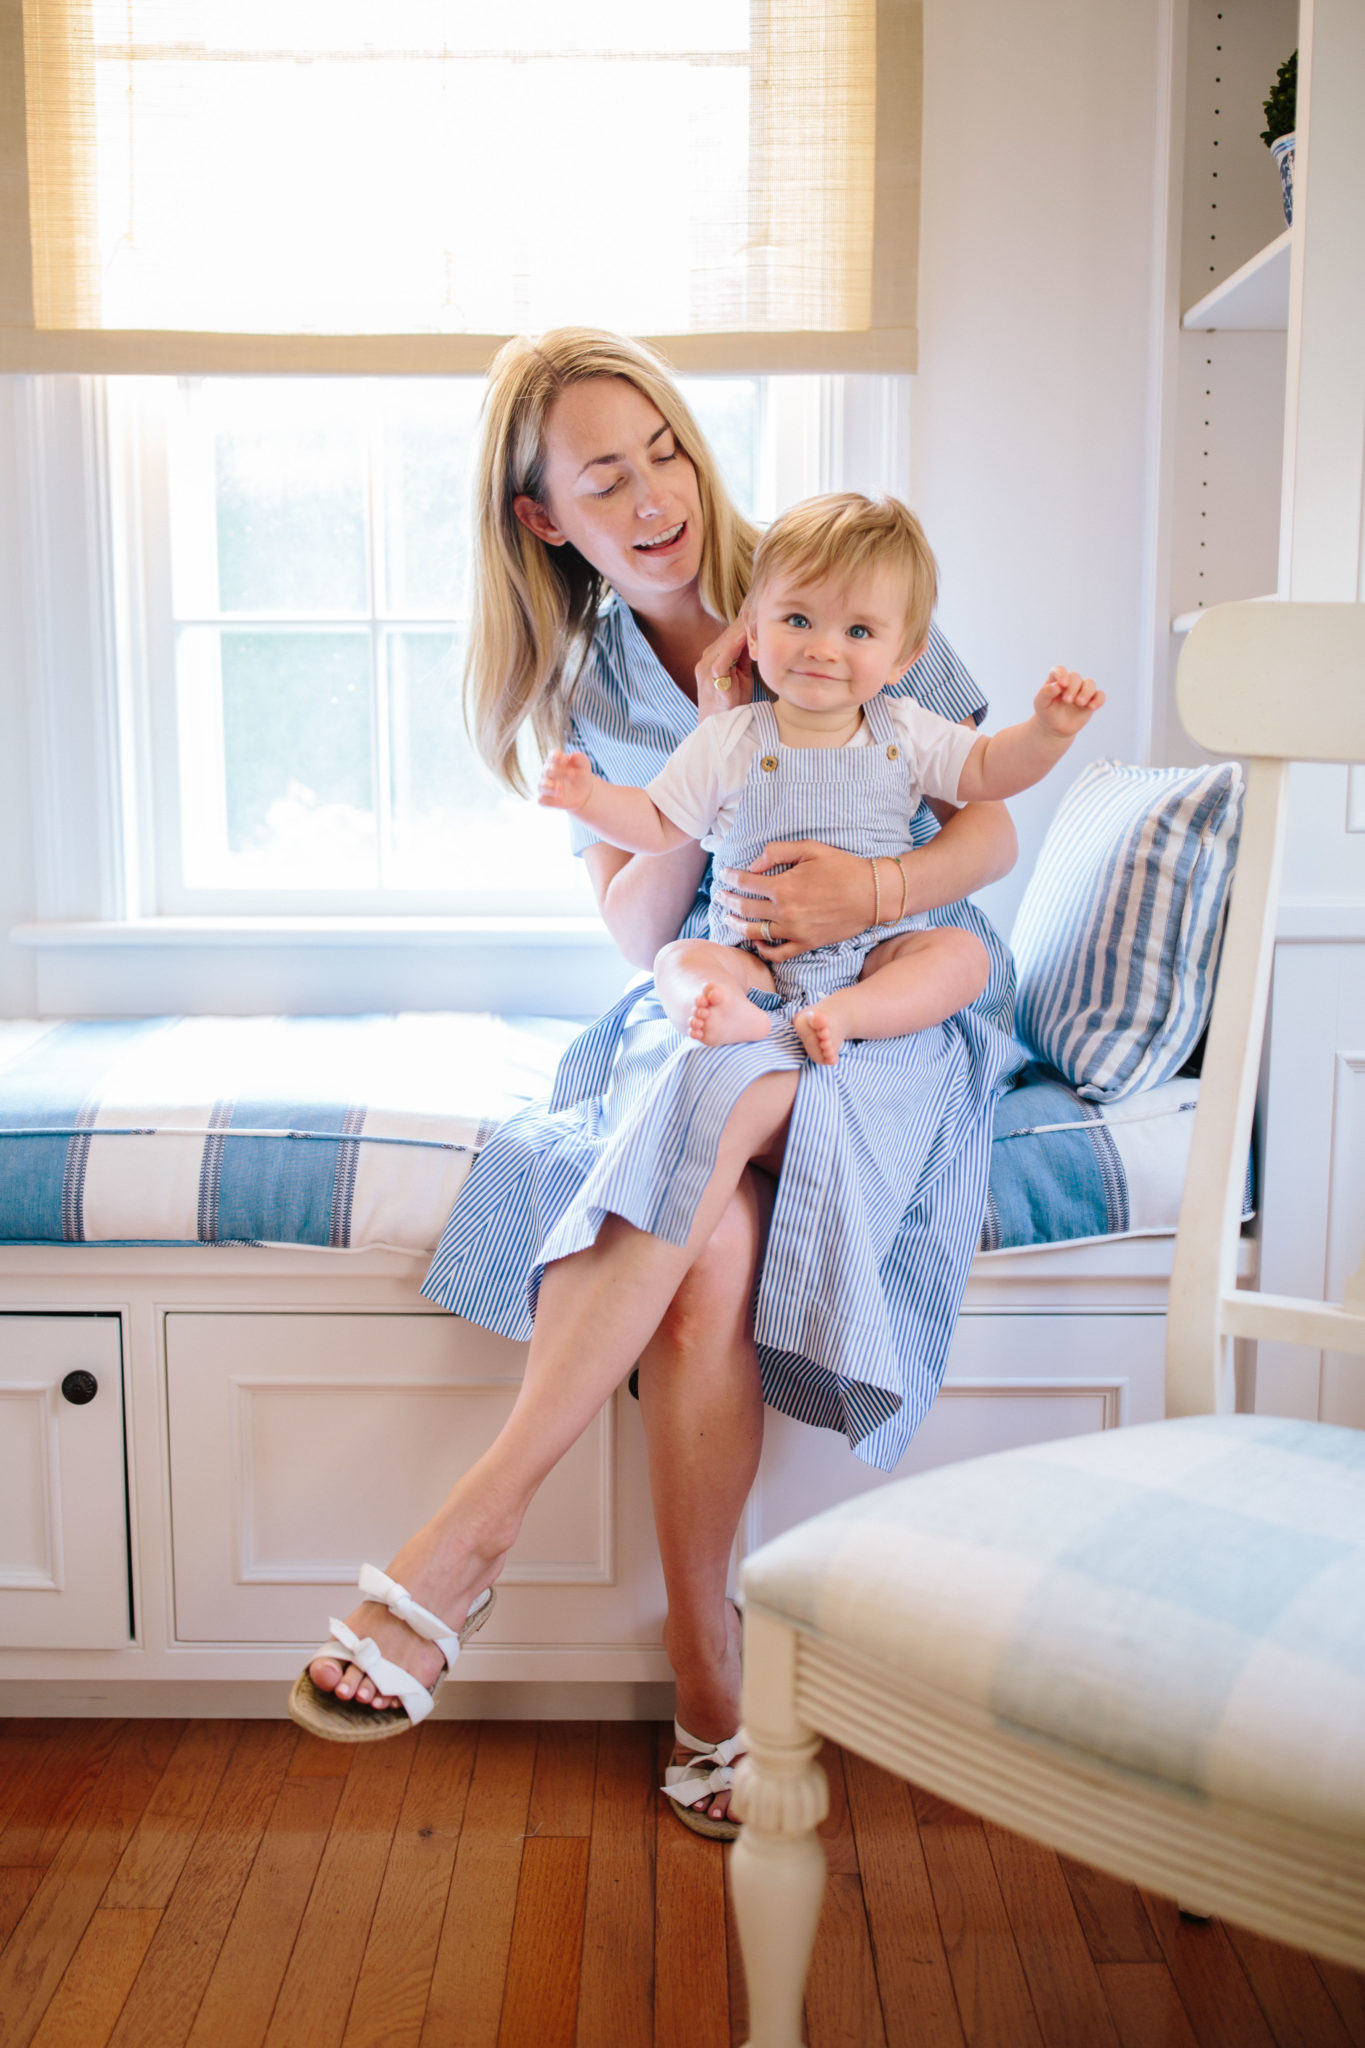 Matching outfit ideas for mothers and sons   Rhyme & Reason